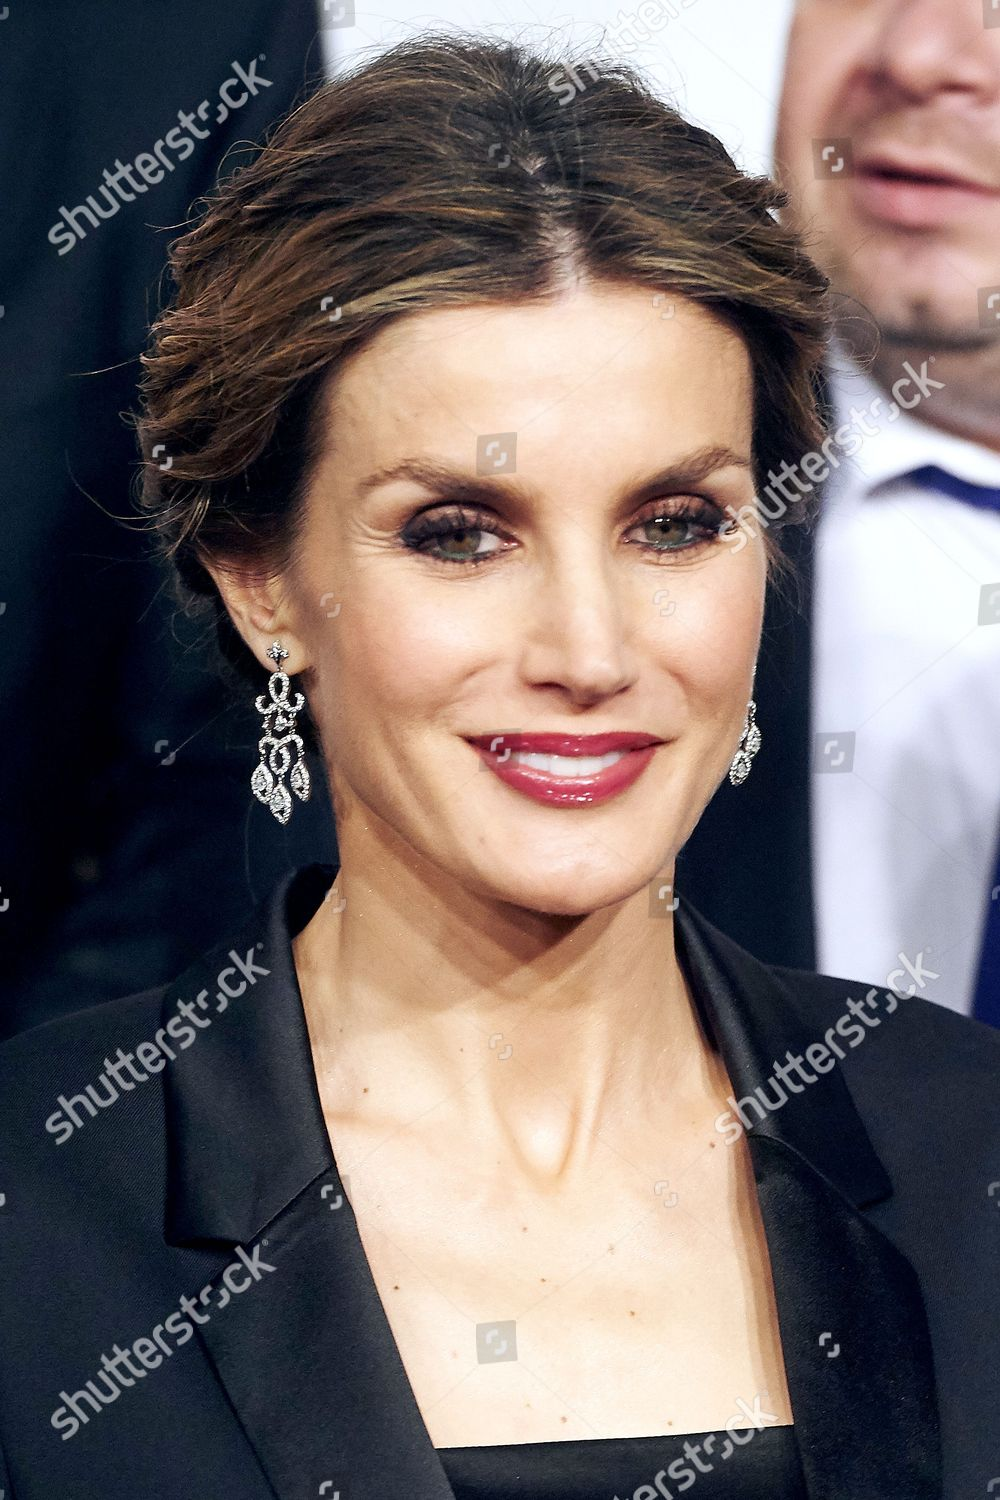 Queen Letizia Editorial Stock Photo - Stock Image | Shutterstock